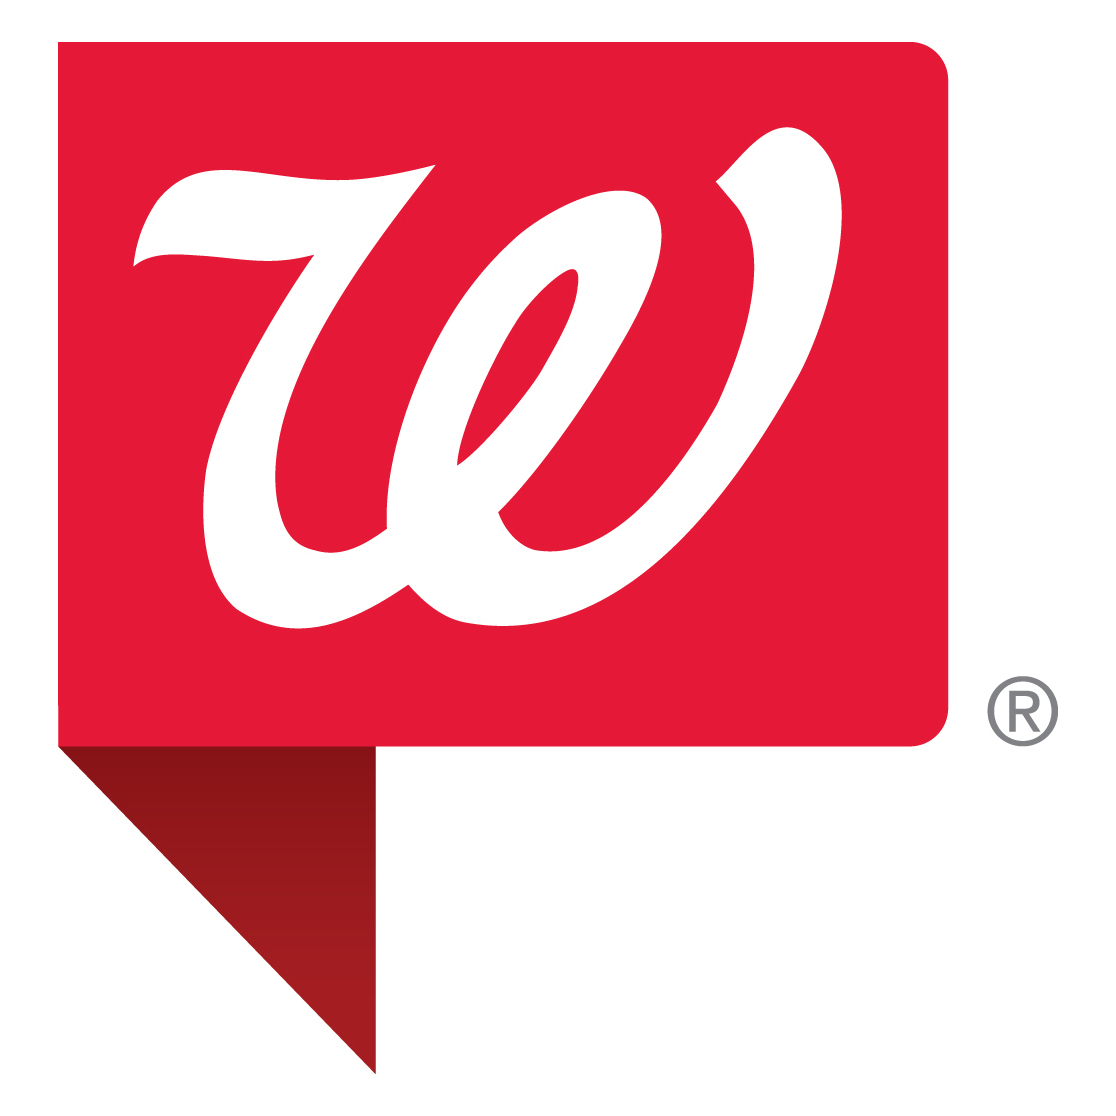 Walgreens - Chadds Ford, PA - Pharmacist